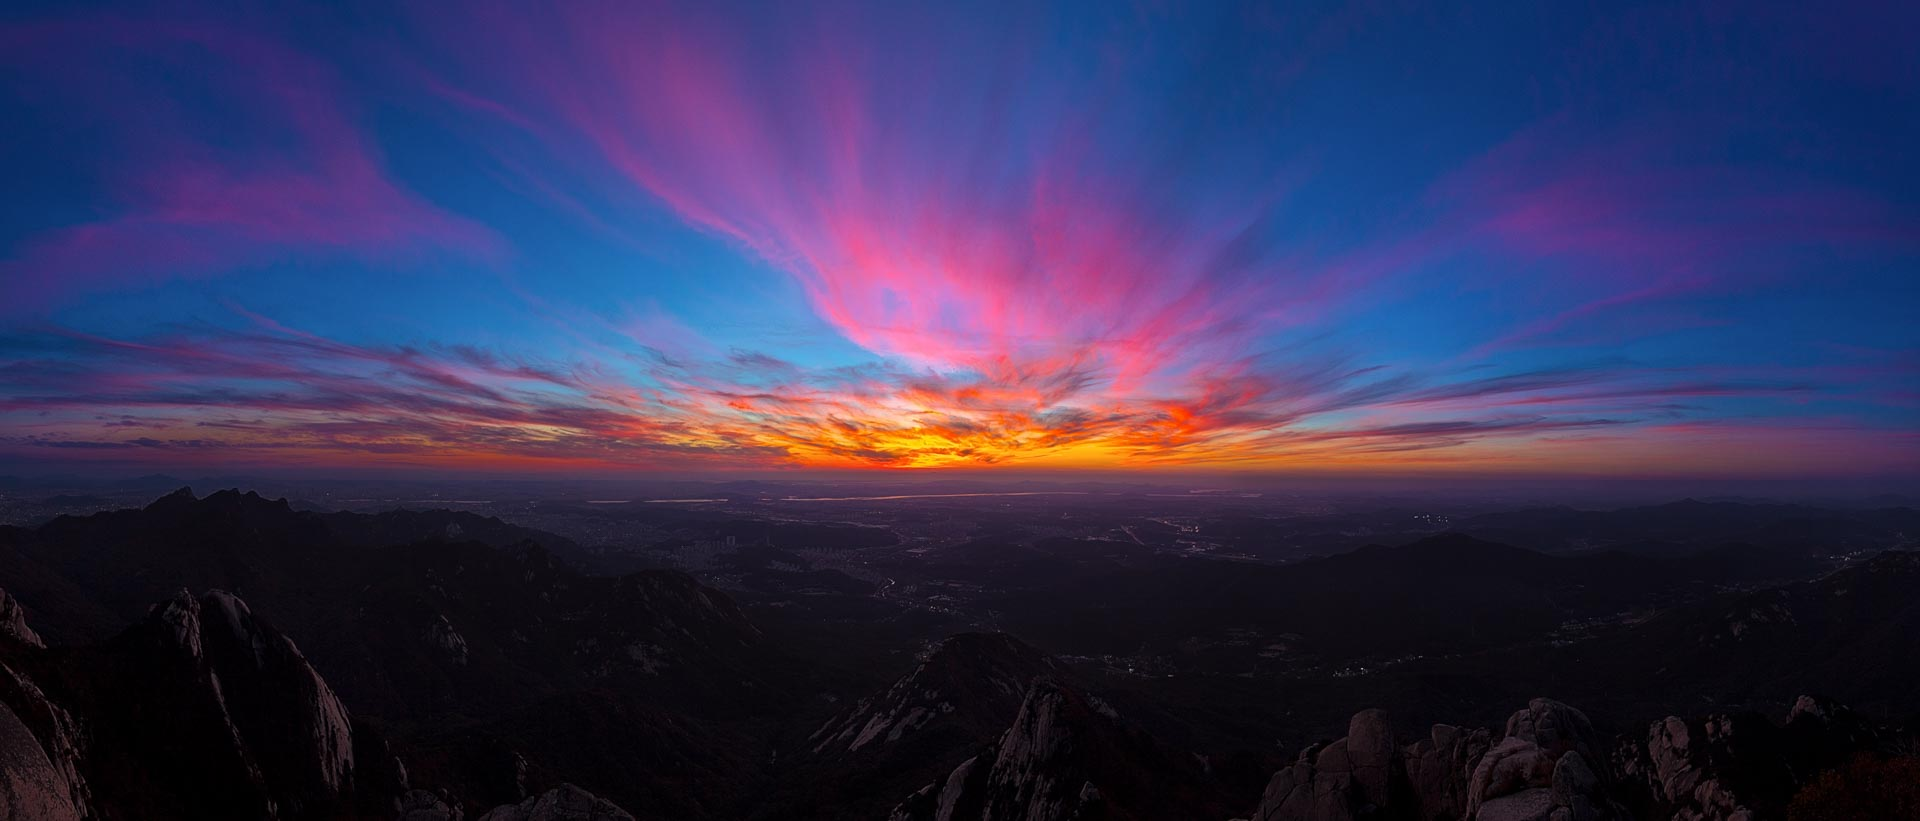 Sunset from Baegundae Peak atop Bukhansan Mountain. South Korea.